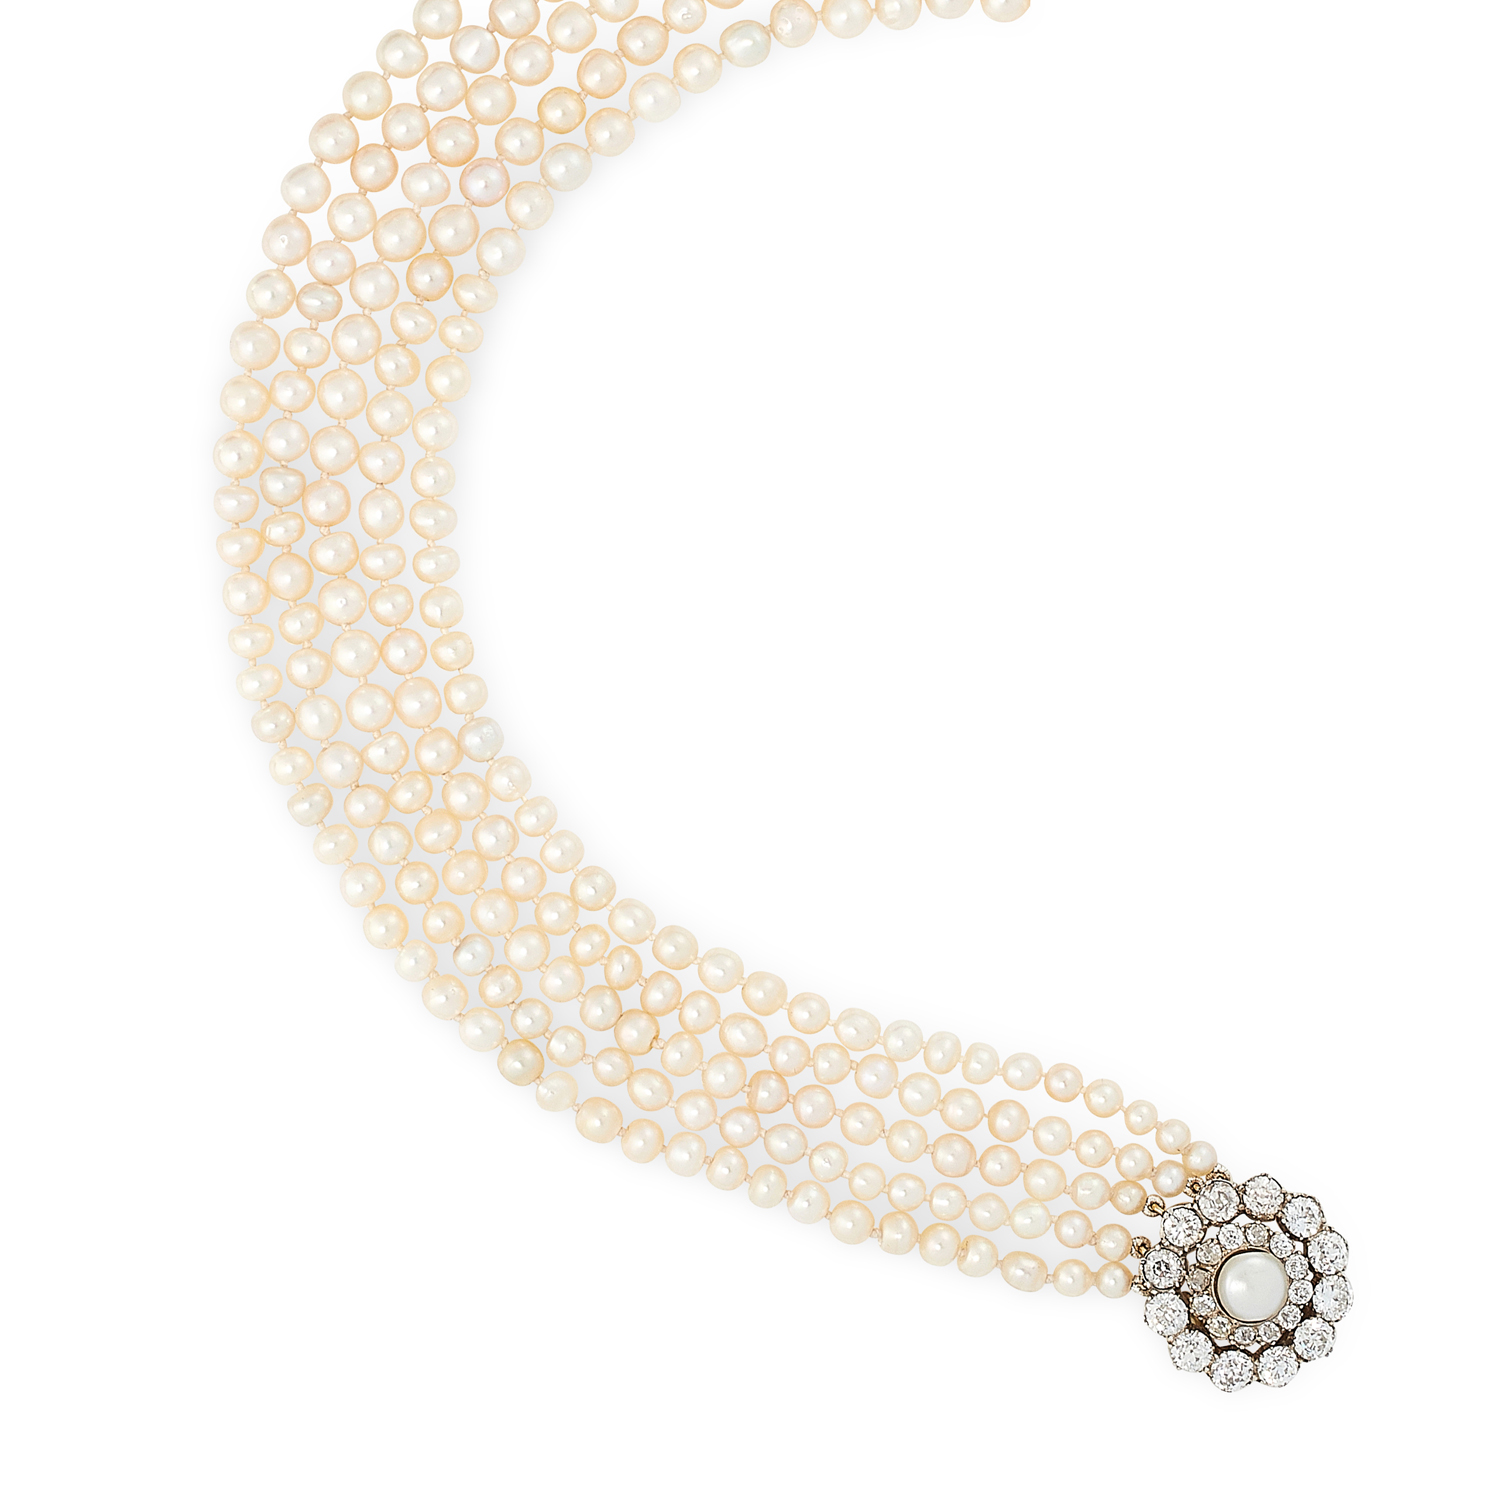 A NATURAL PEARL AND DIAMOND FIVE ROW NECKLACE in high carat yellow gold, comprising five rows of - Image 2 of 2